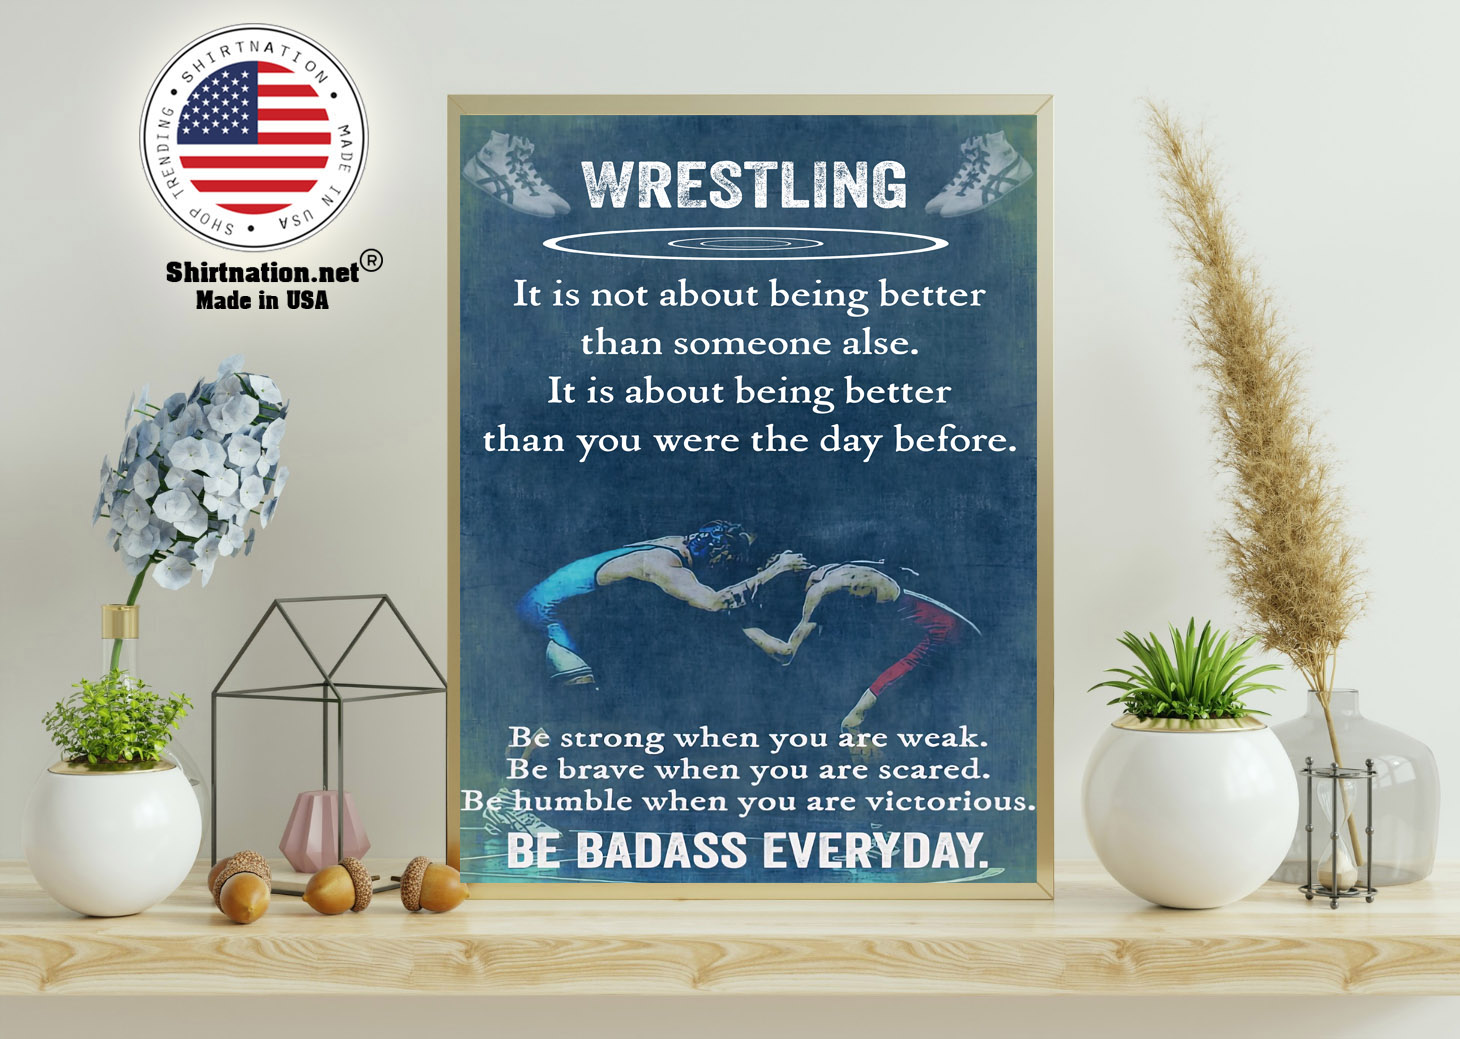 Wrestling it is not about being better than someine else poster 11